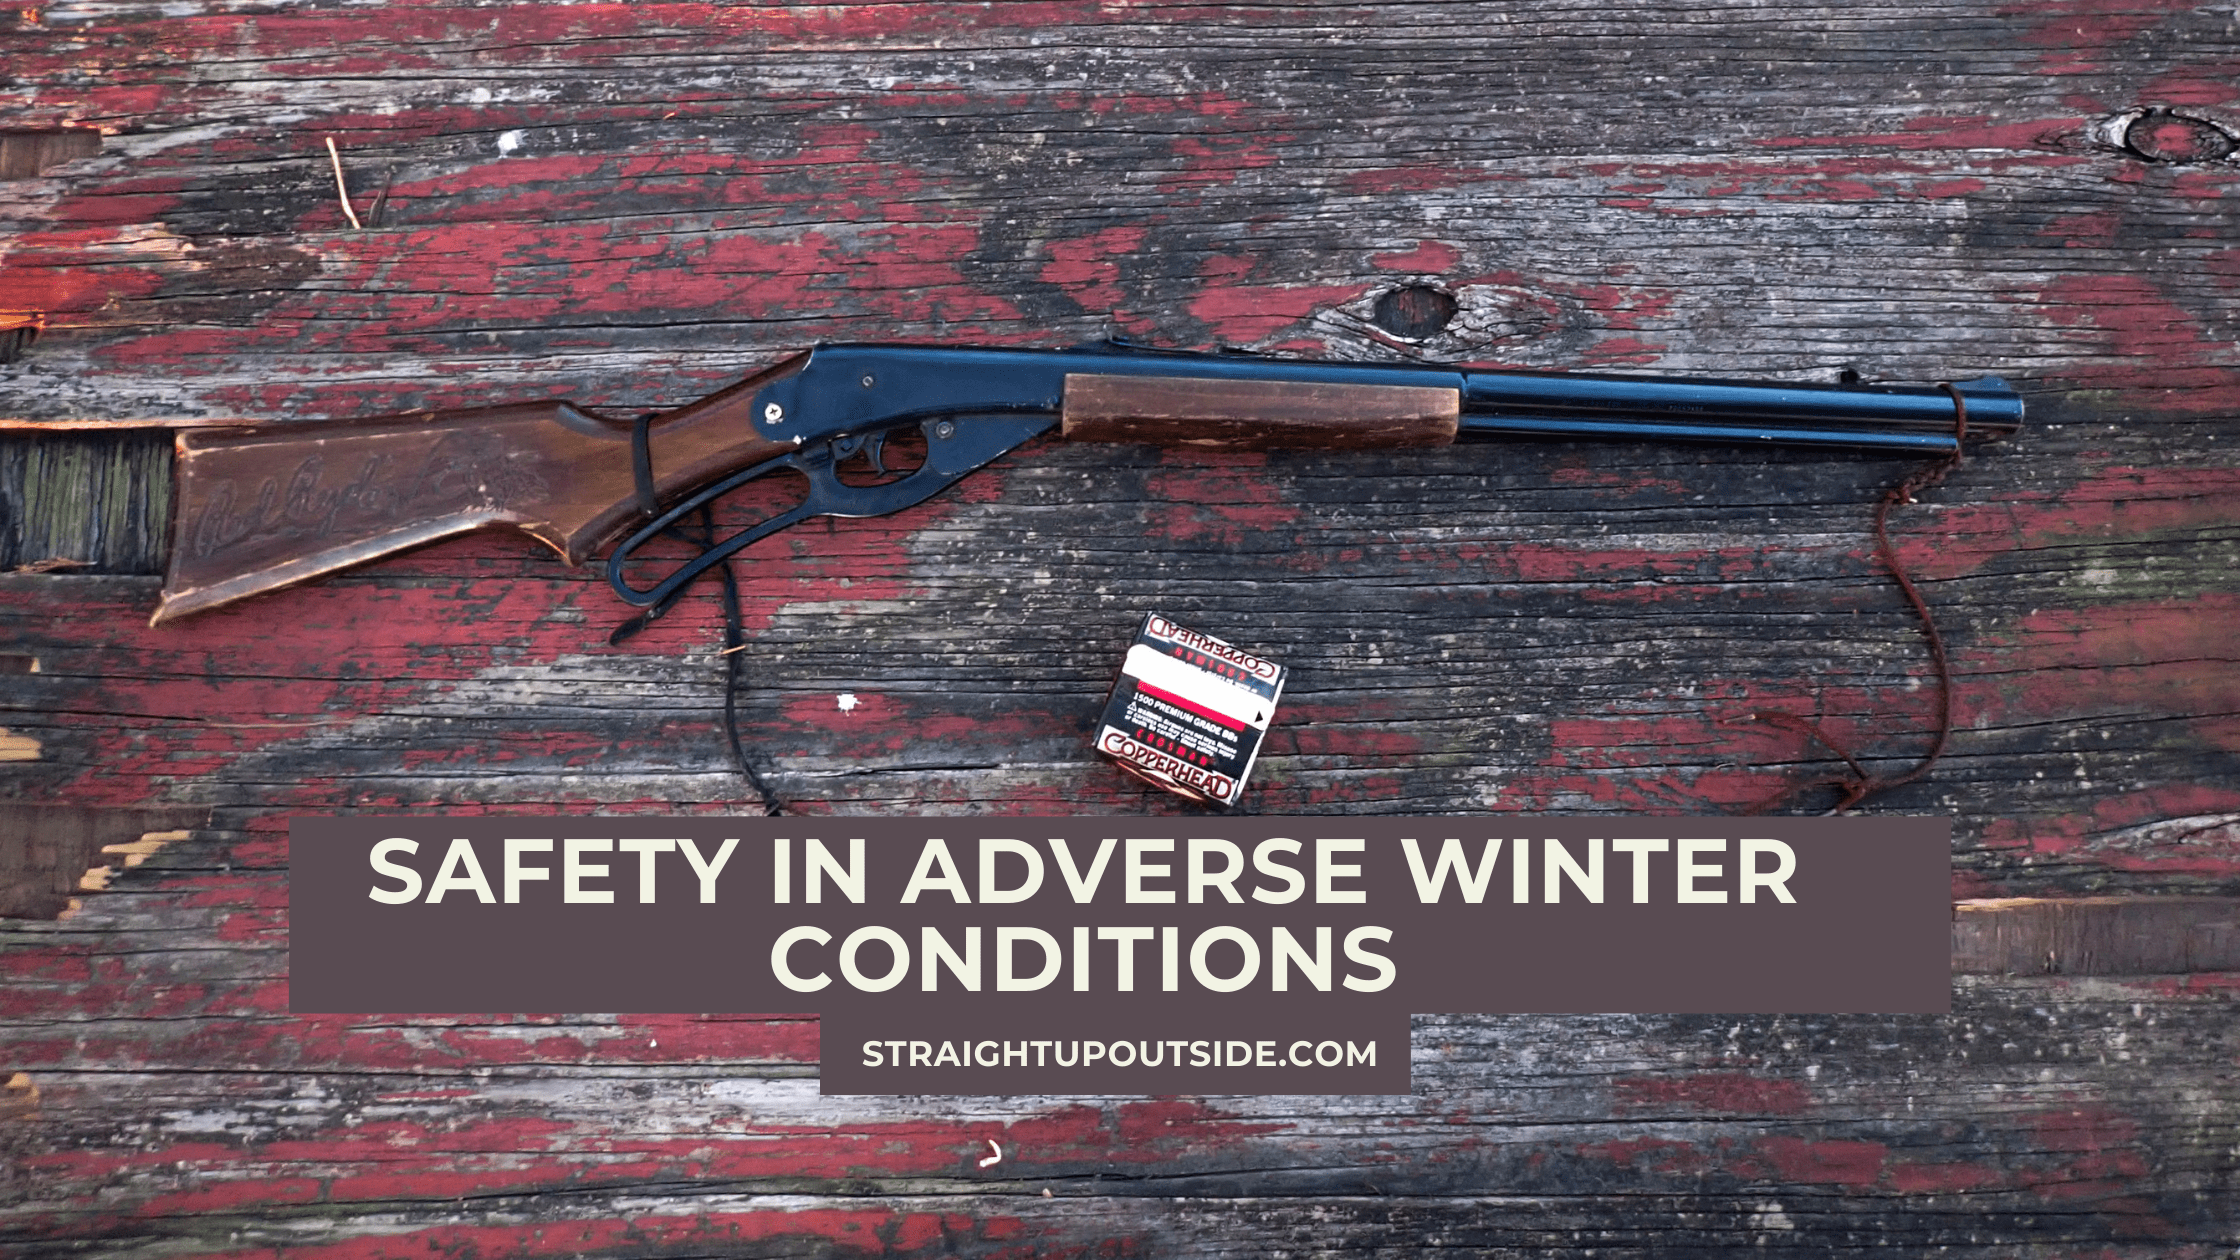 Safety in Adverse Winter Conditions